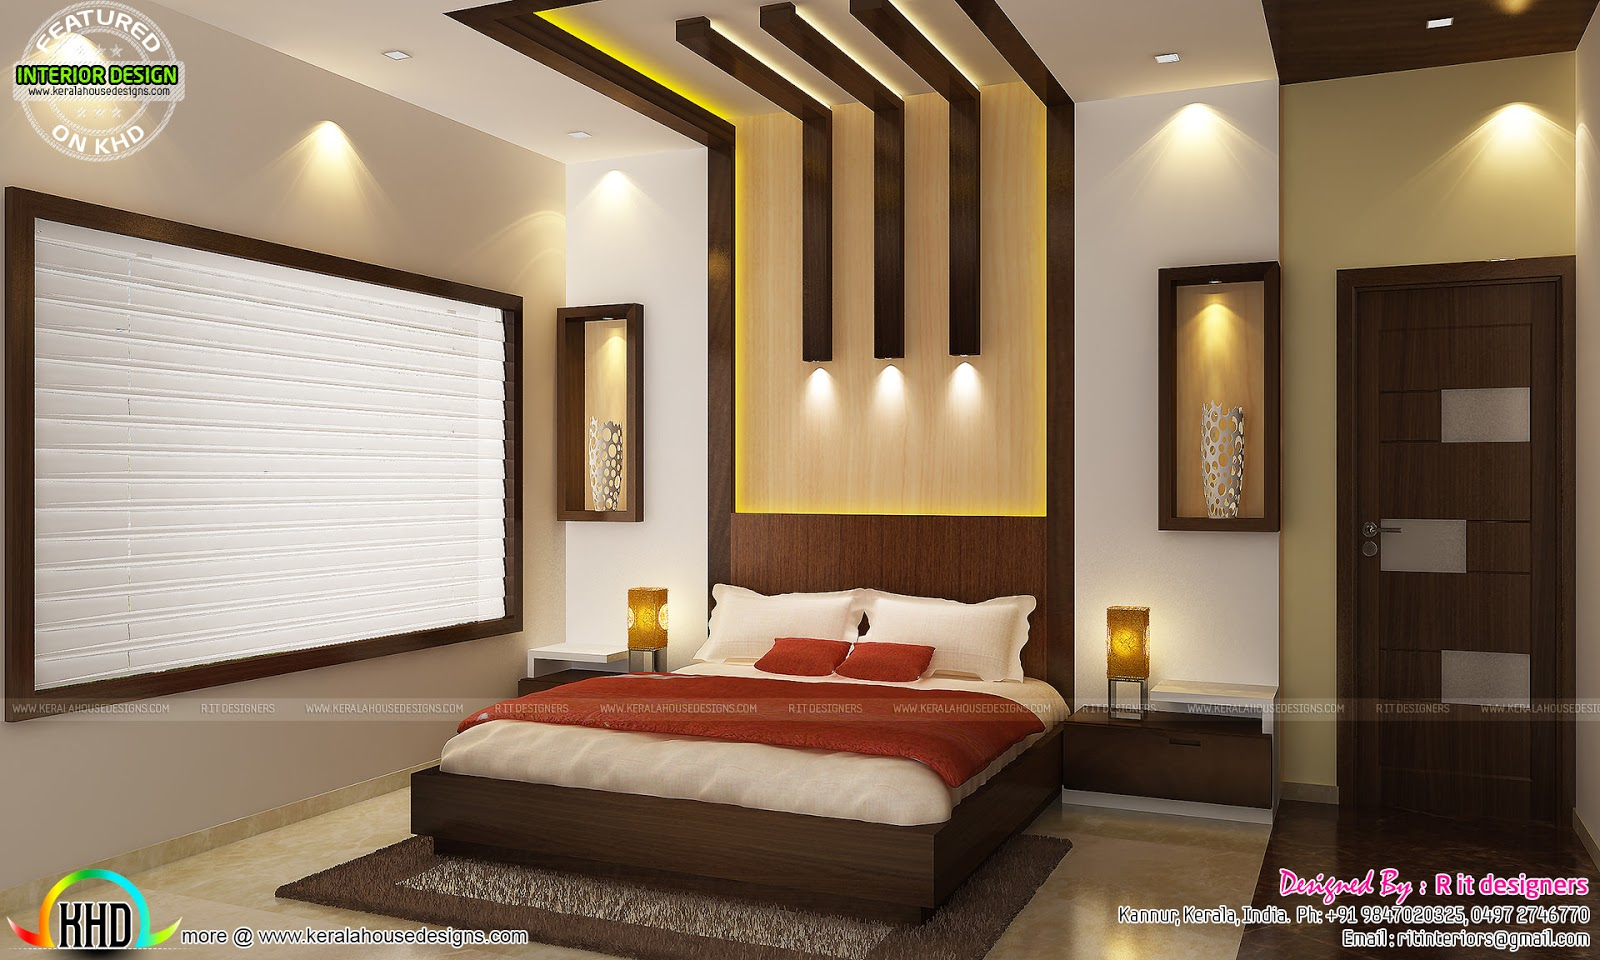 Kitchen living bedroom dining interior decor kerala for Interior decoration ideas for bedroom